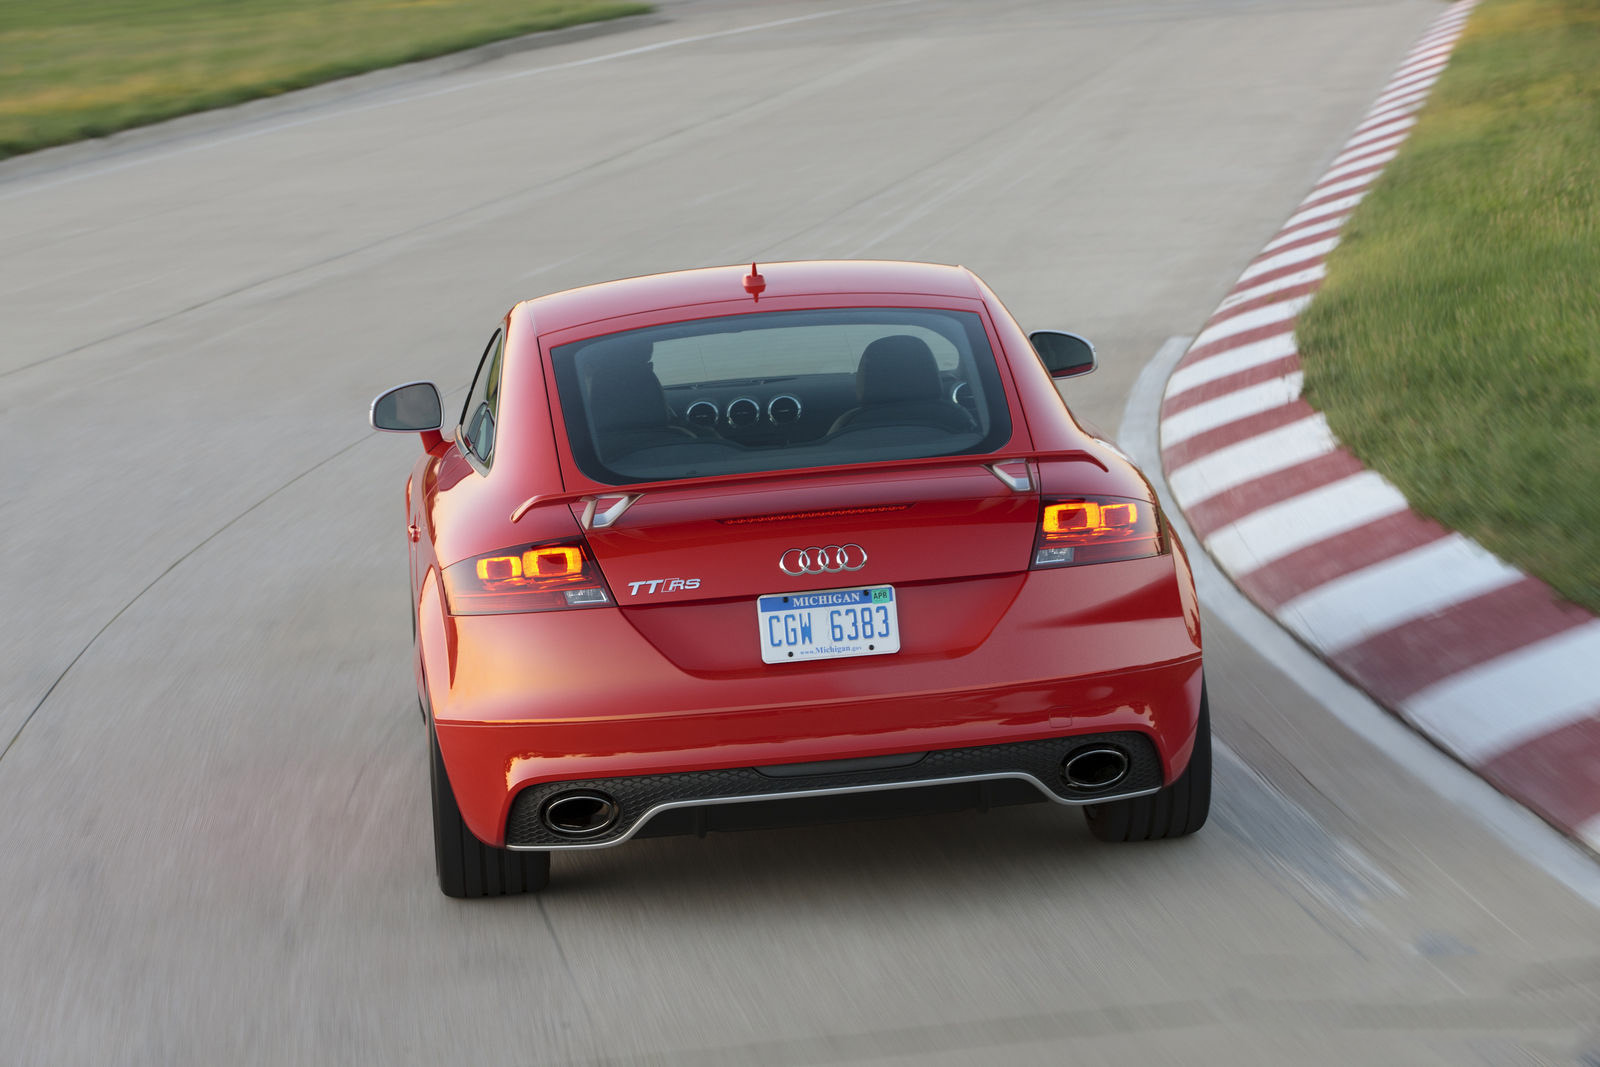 car in 2013 Audi TT-RS